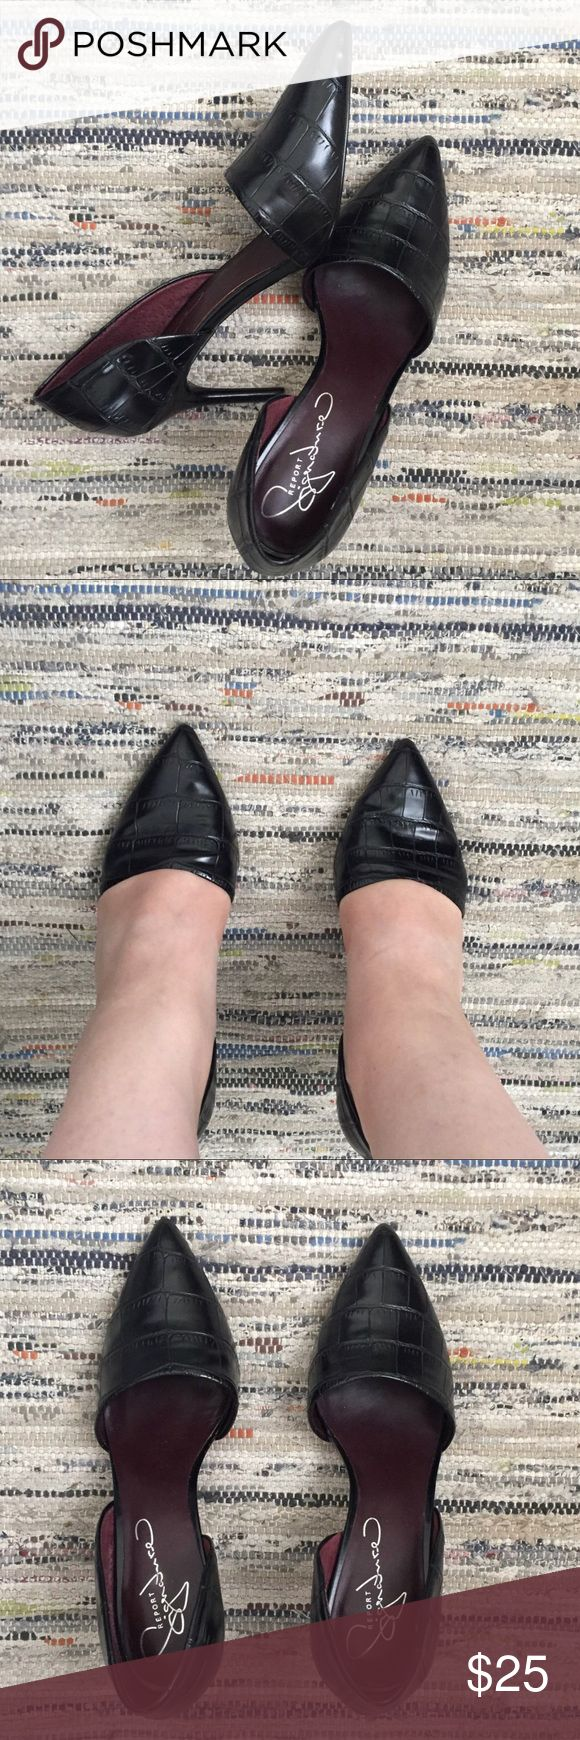 Black leather heals Beautiful vintage black leather pumps in pristine condition   They have such a sophisticated and minimalist look   A timeless shoe that has an unusual front cut giving it a modern look   They are comfortable and look amazing with a black outfit/ cocktail dress/ denim and honestly anything! Great for work Shoes Heels